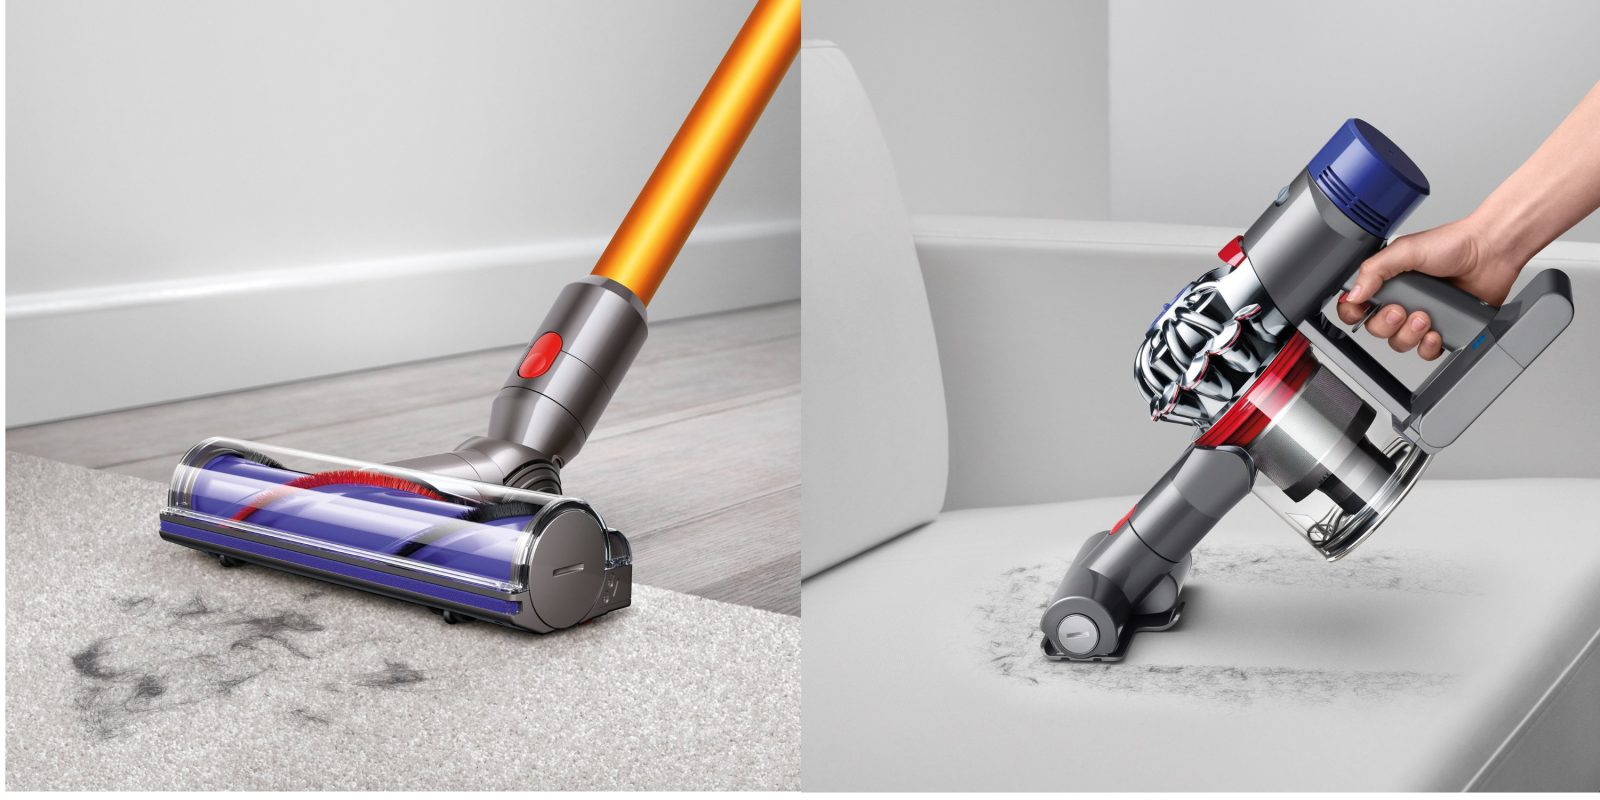 dyson s sv10 v8 total clean cordless vacuum drops to 270 shipped refurb orig 600 9to5toys. Black Bedroom Furniture Sets. Home Design Ideas